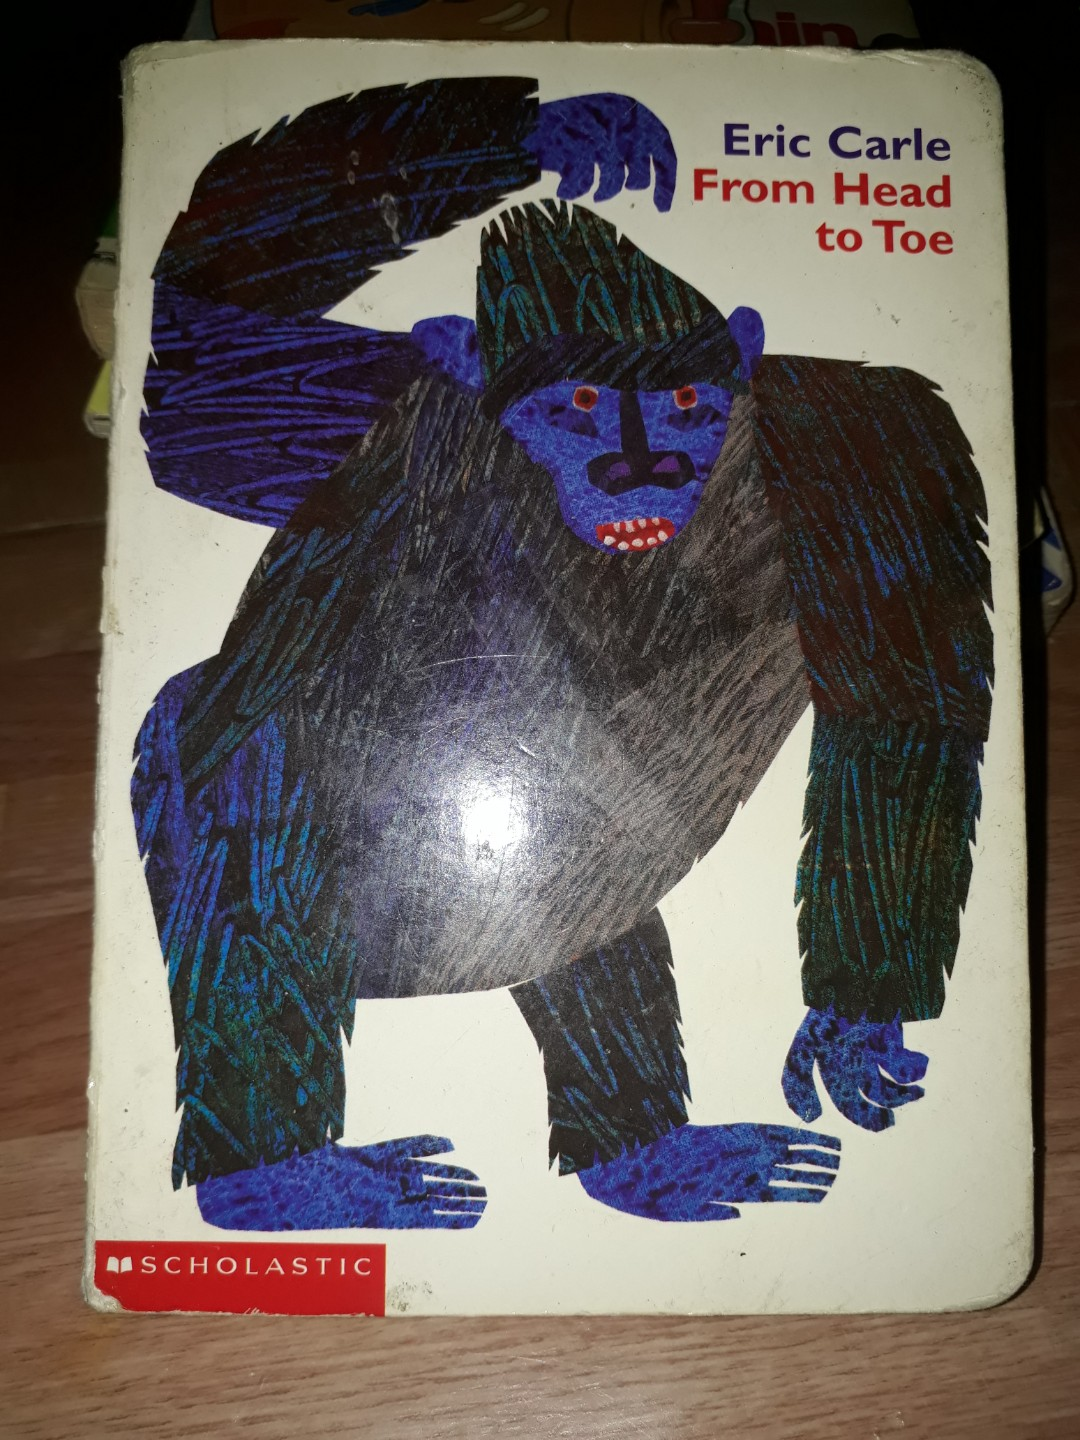 From Head to Toe book